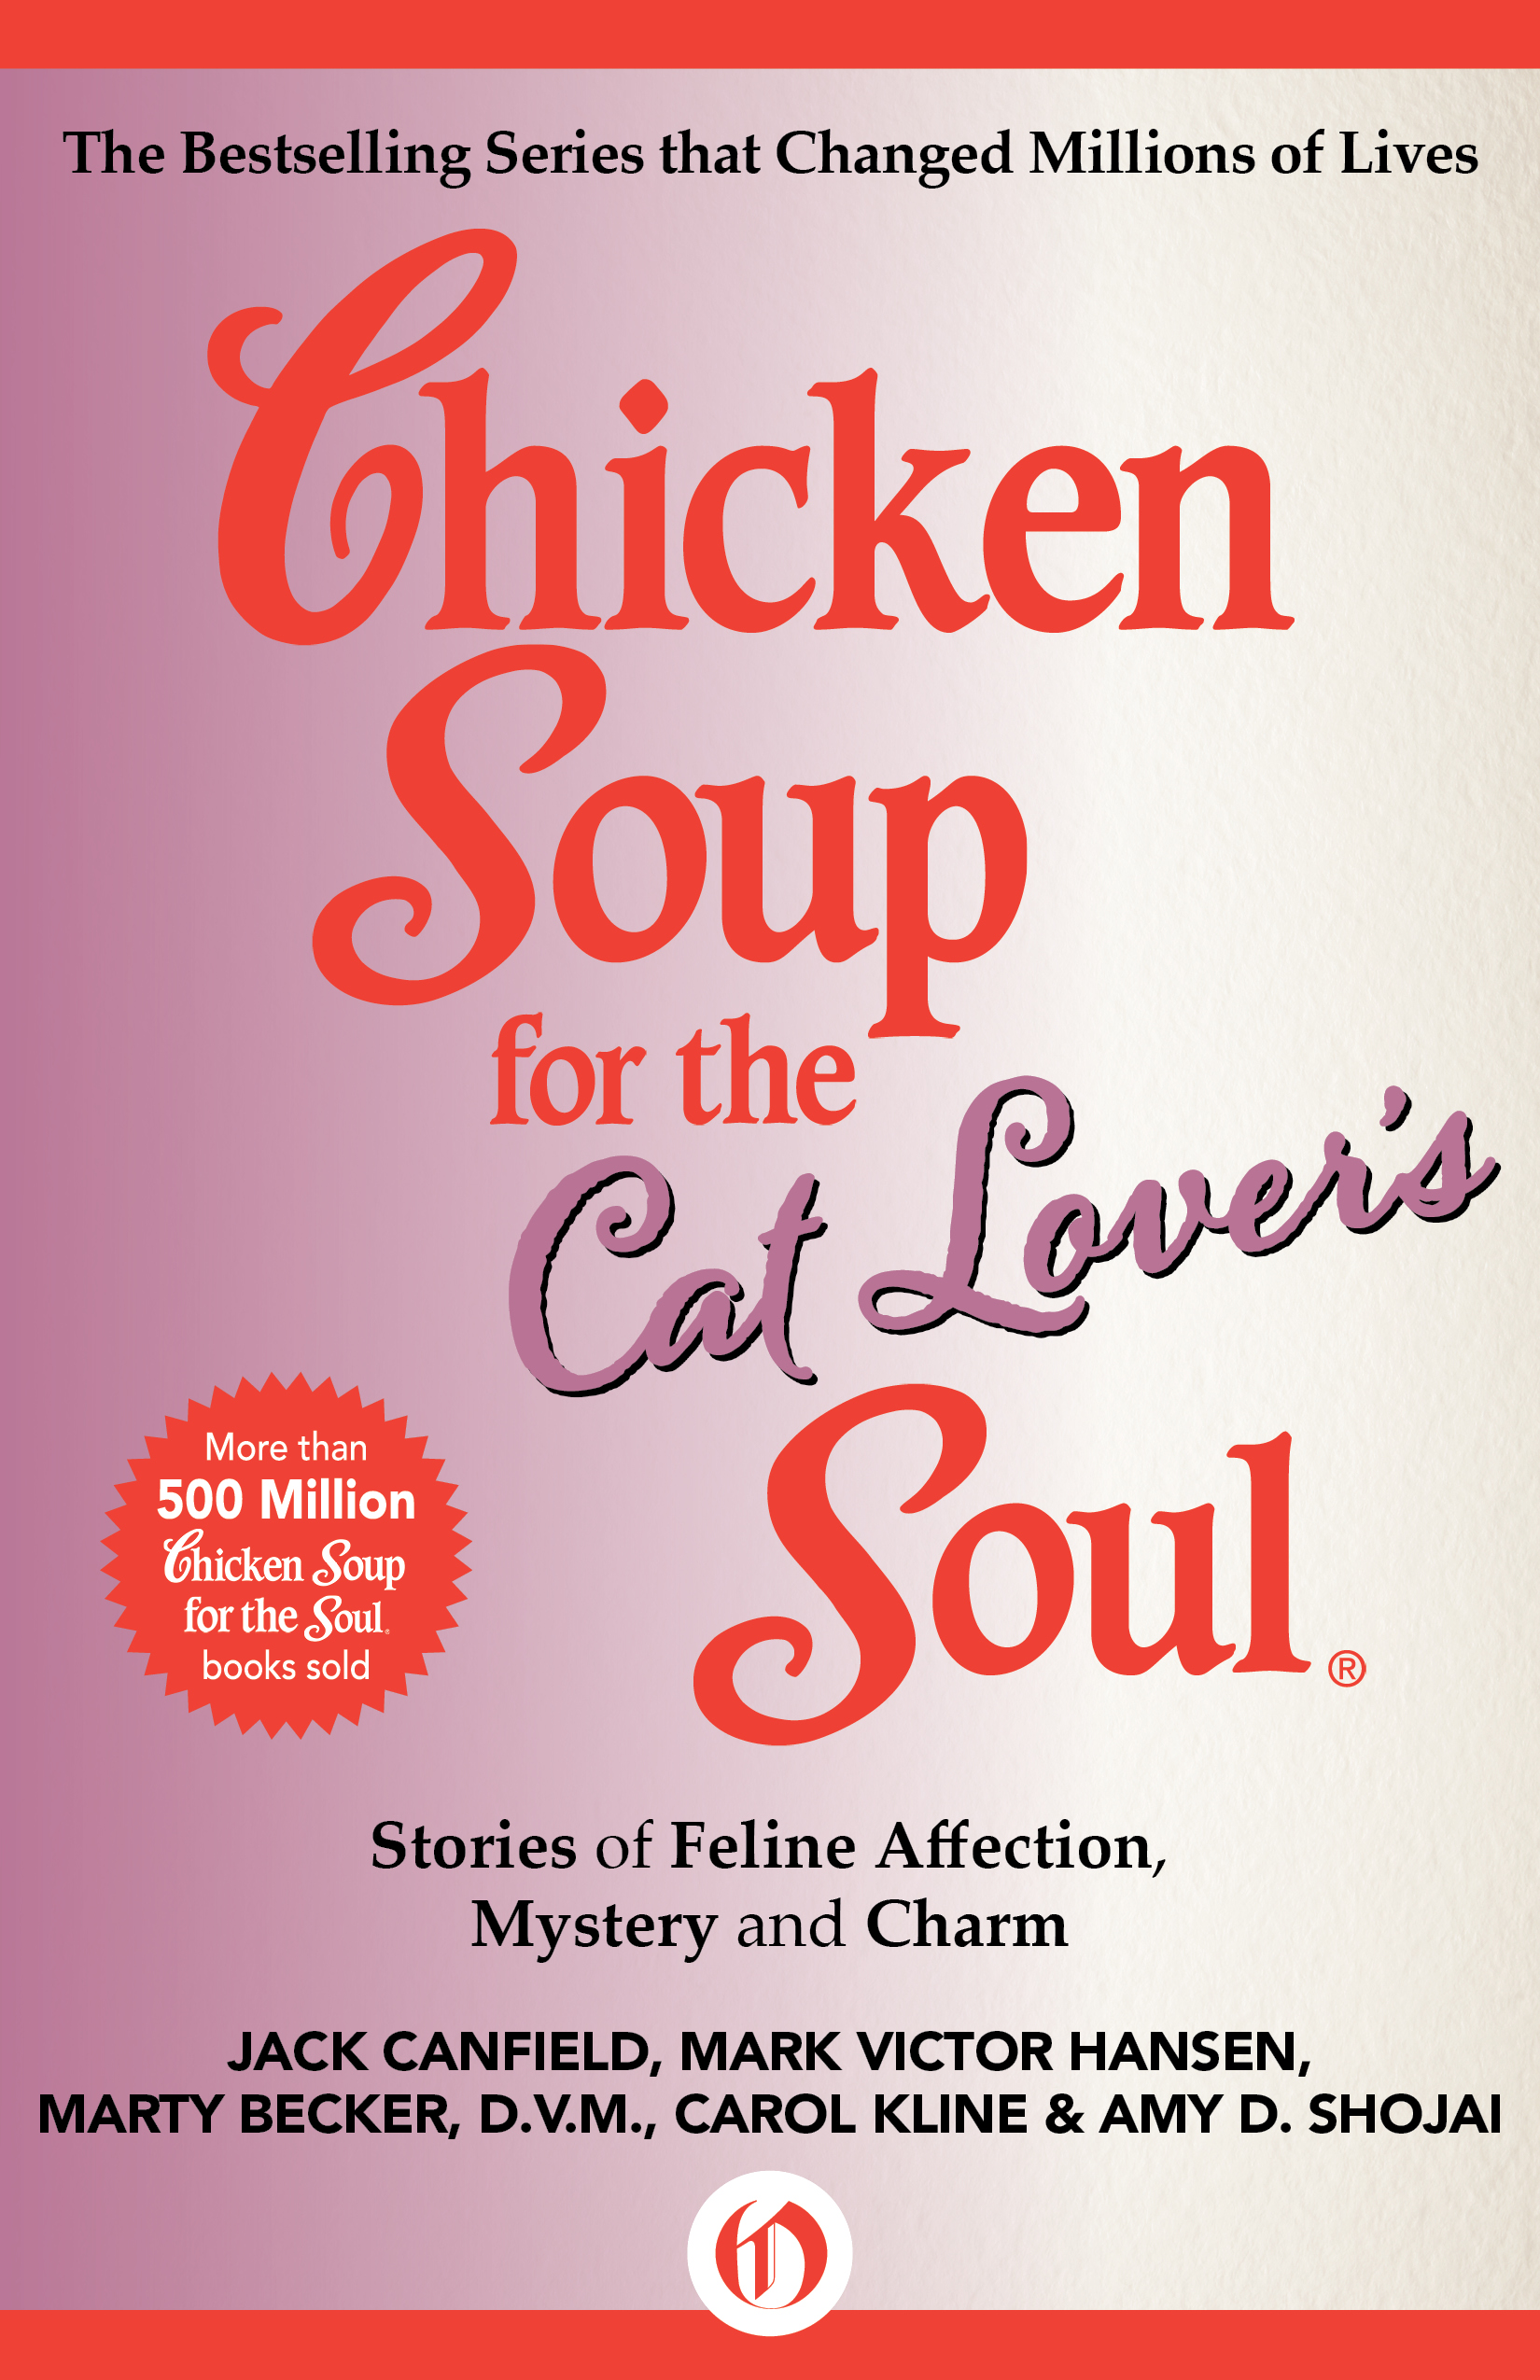 Chicken Soup for the Cat Lover's Soul By: Amy D. Shojai,Carol Kline,Jack Canfield,Mark Victor Hansen,Marty Becker, D.V.M.